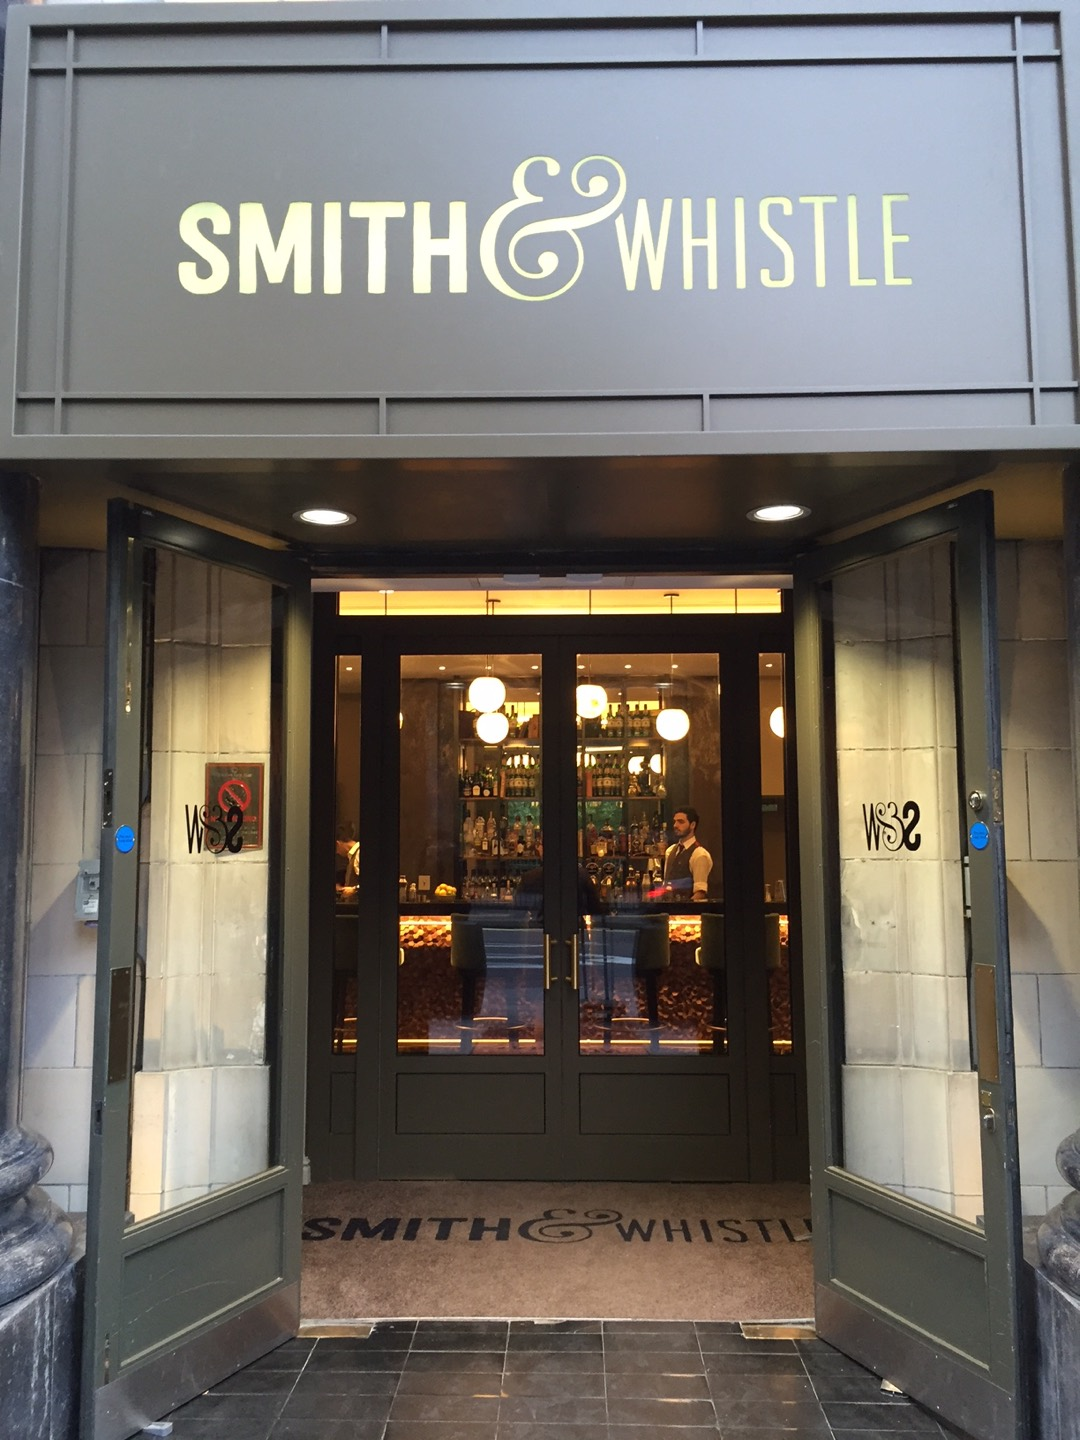 Smith & Whistle